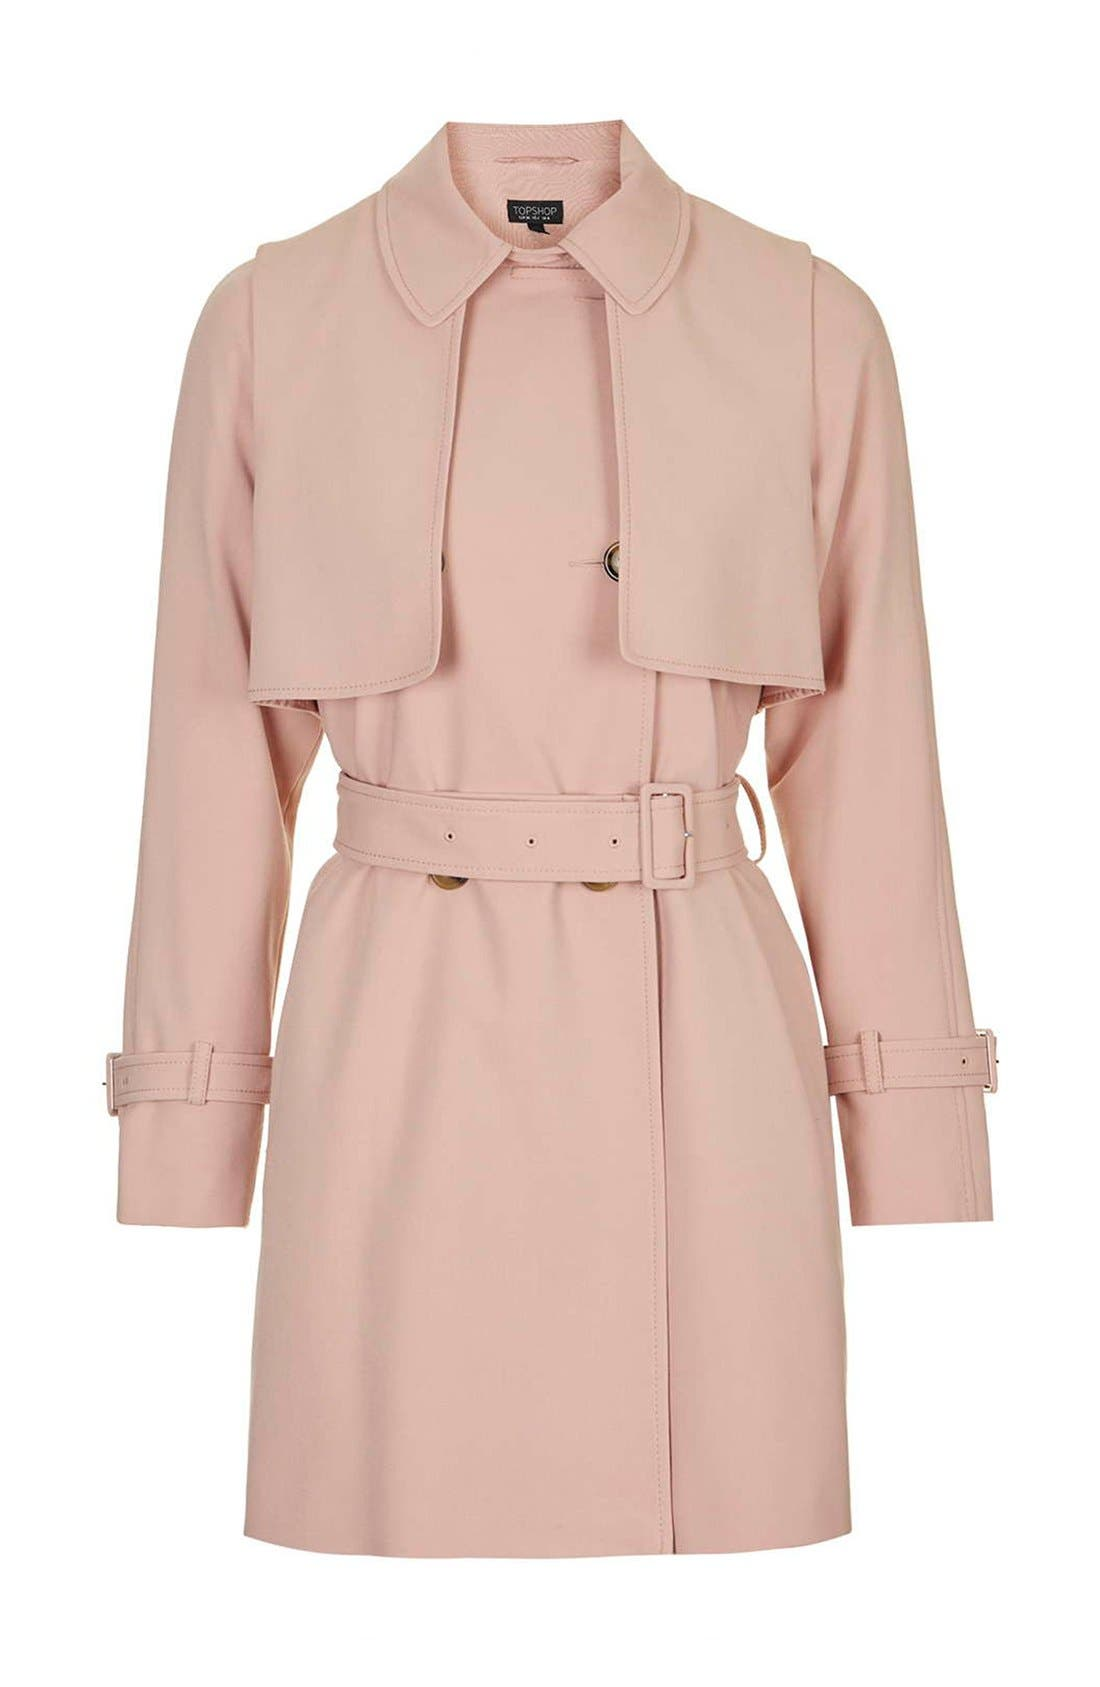 Tailored Double Breasted Coat,                             Alternate thumbnail 6, color,                             Light Pink